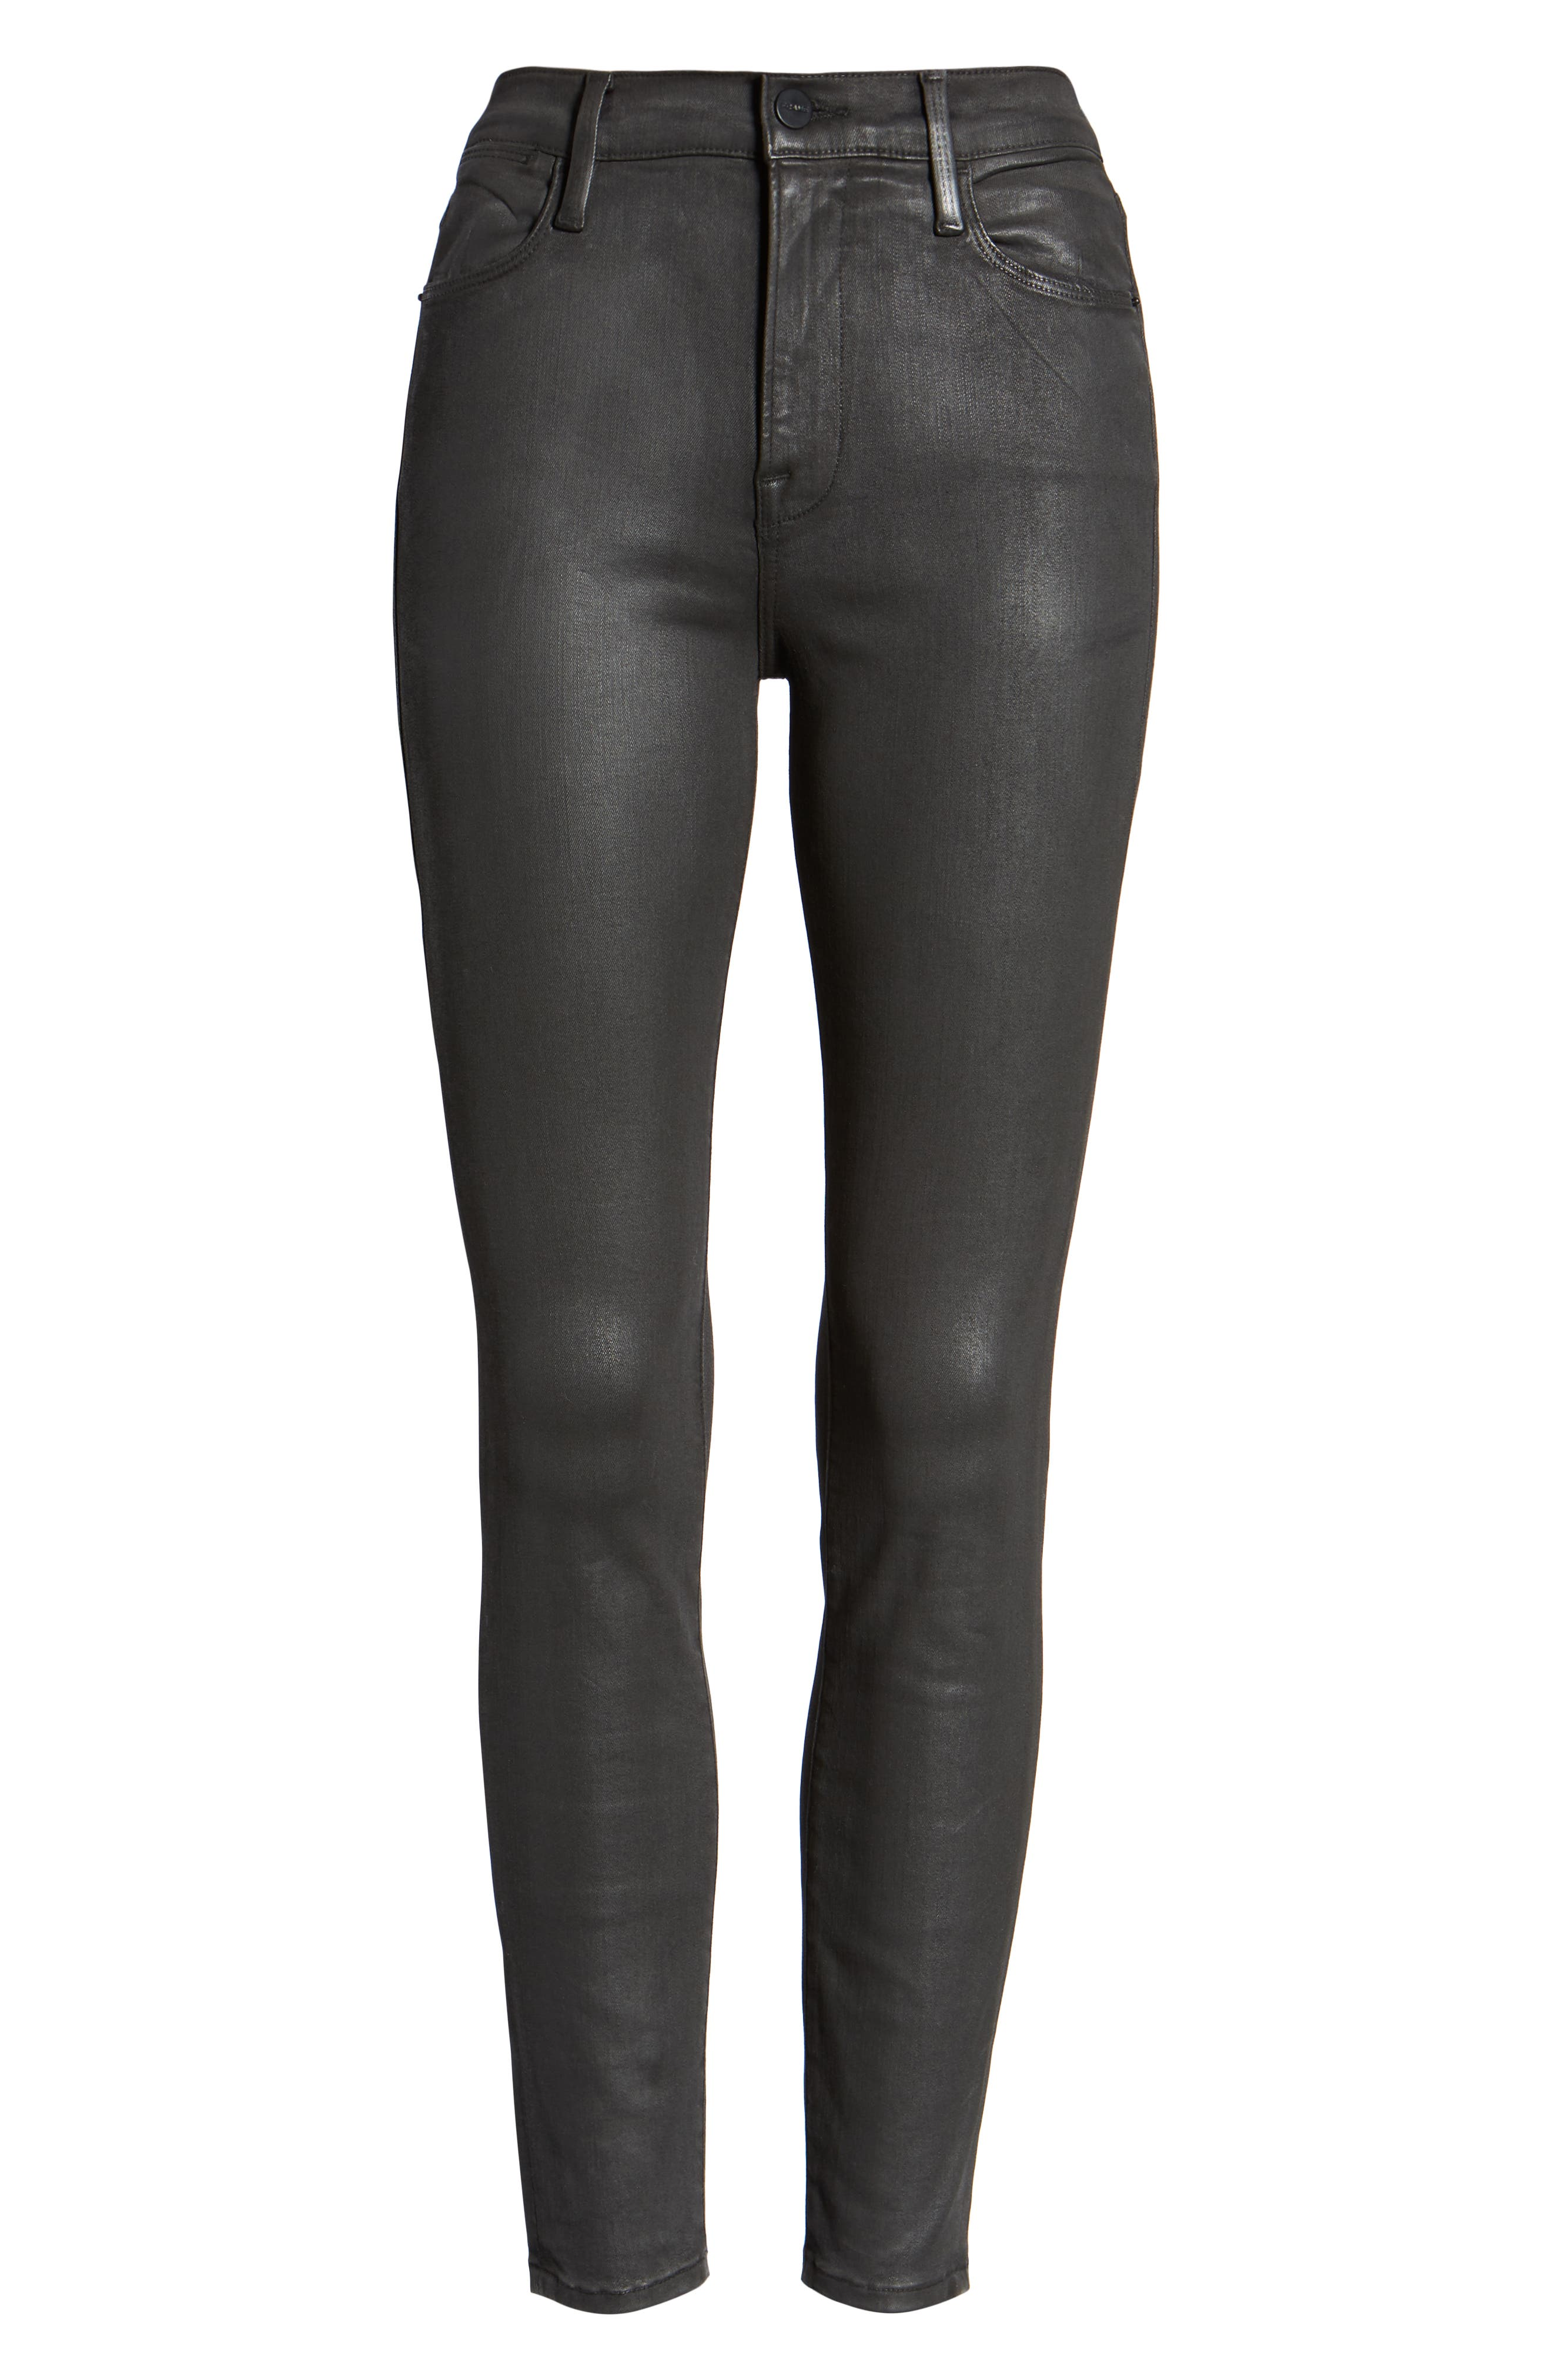 Le High Ankle Skinny Jeans,                             Alternate thumbnail 7, color,                             STONE COATED